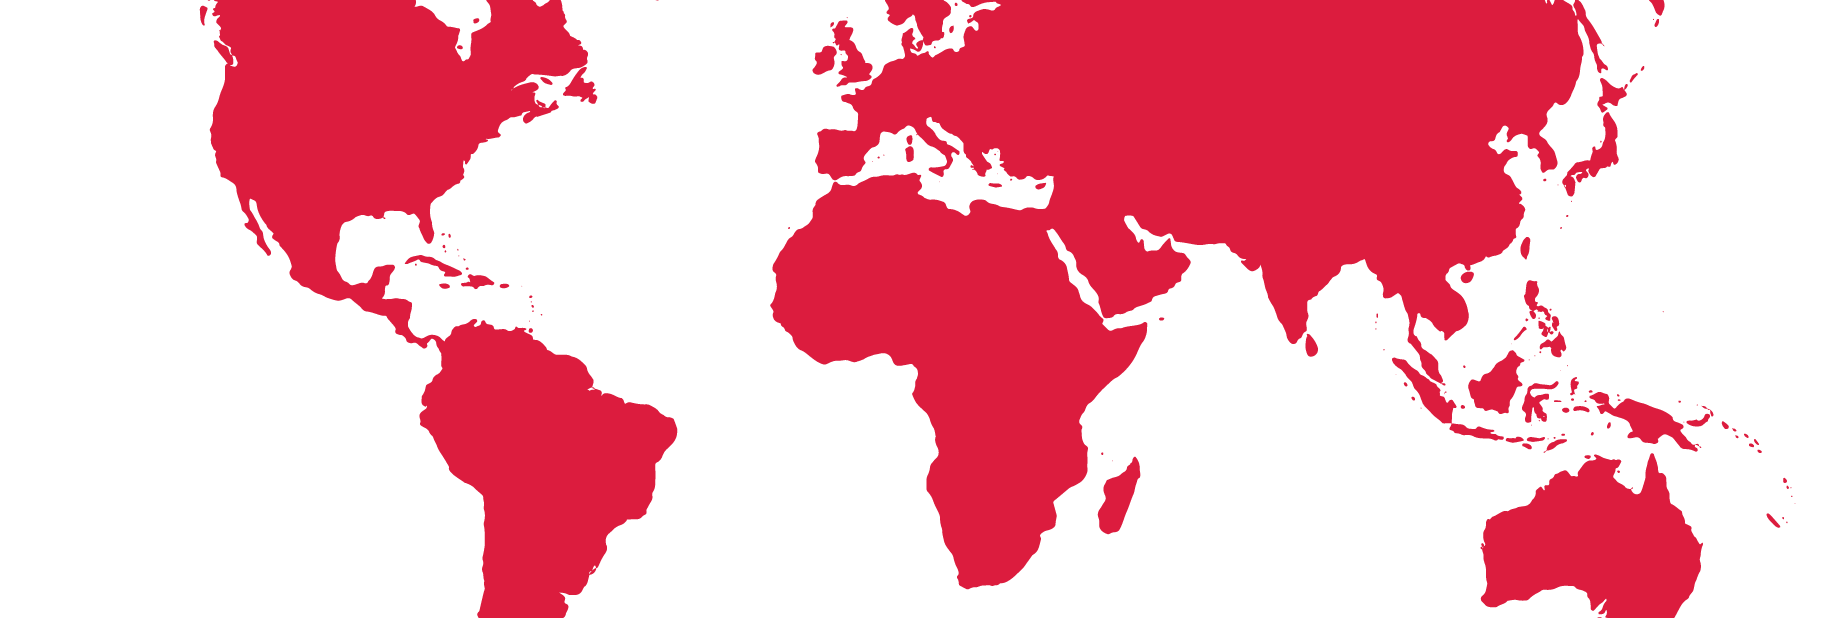 world-red-cropped